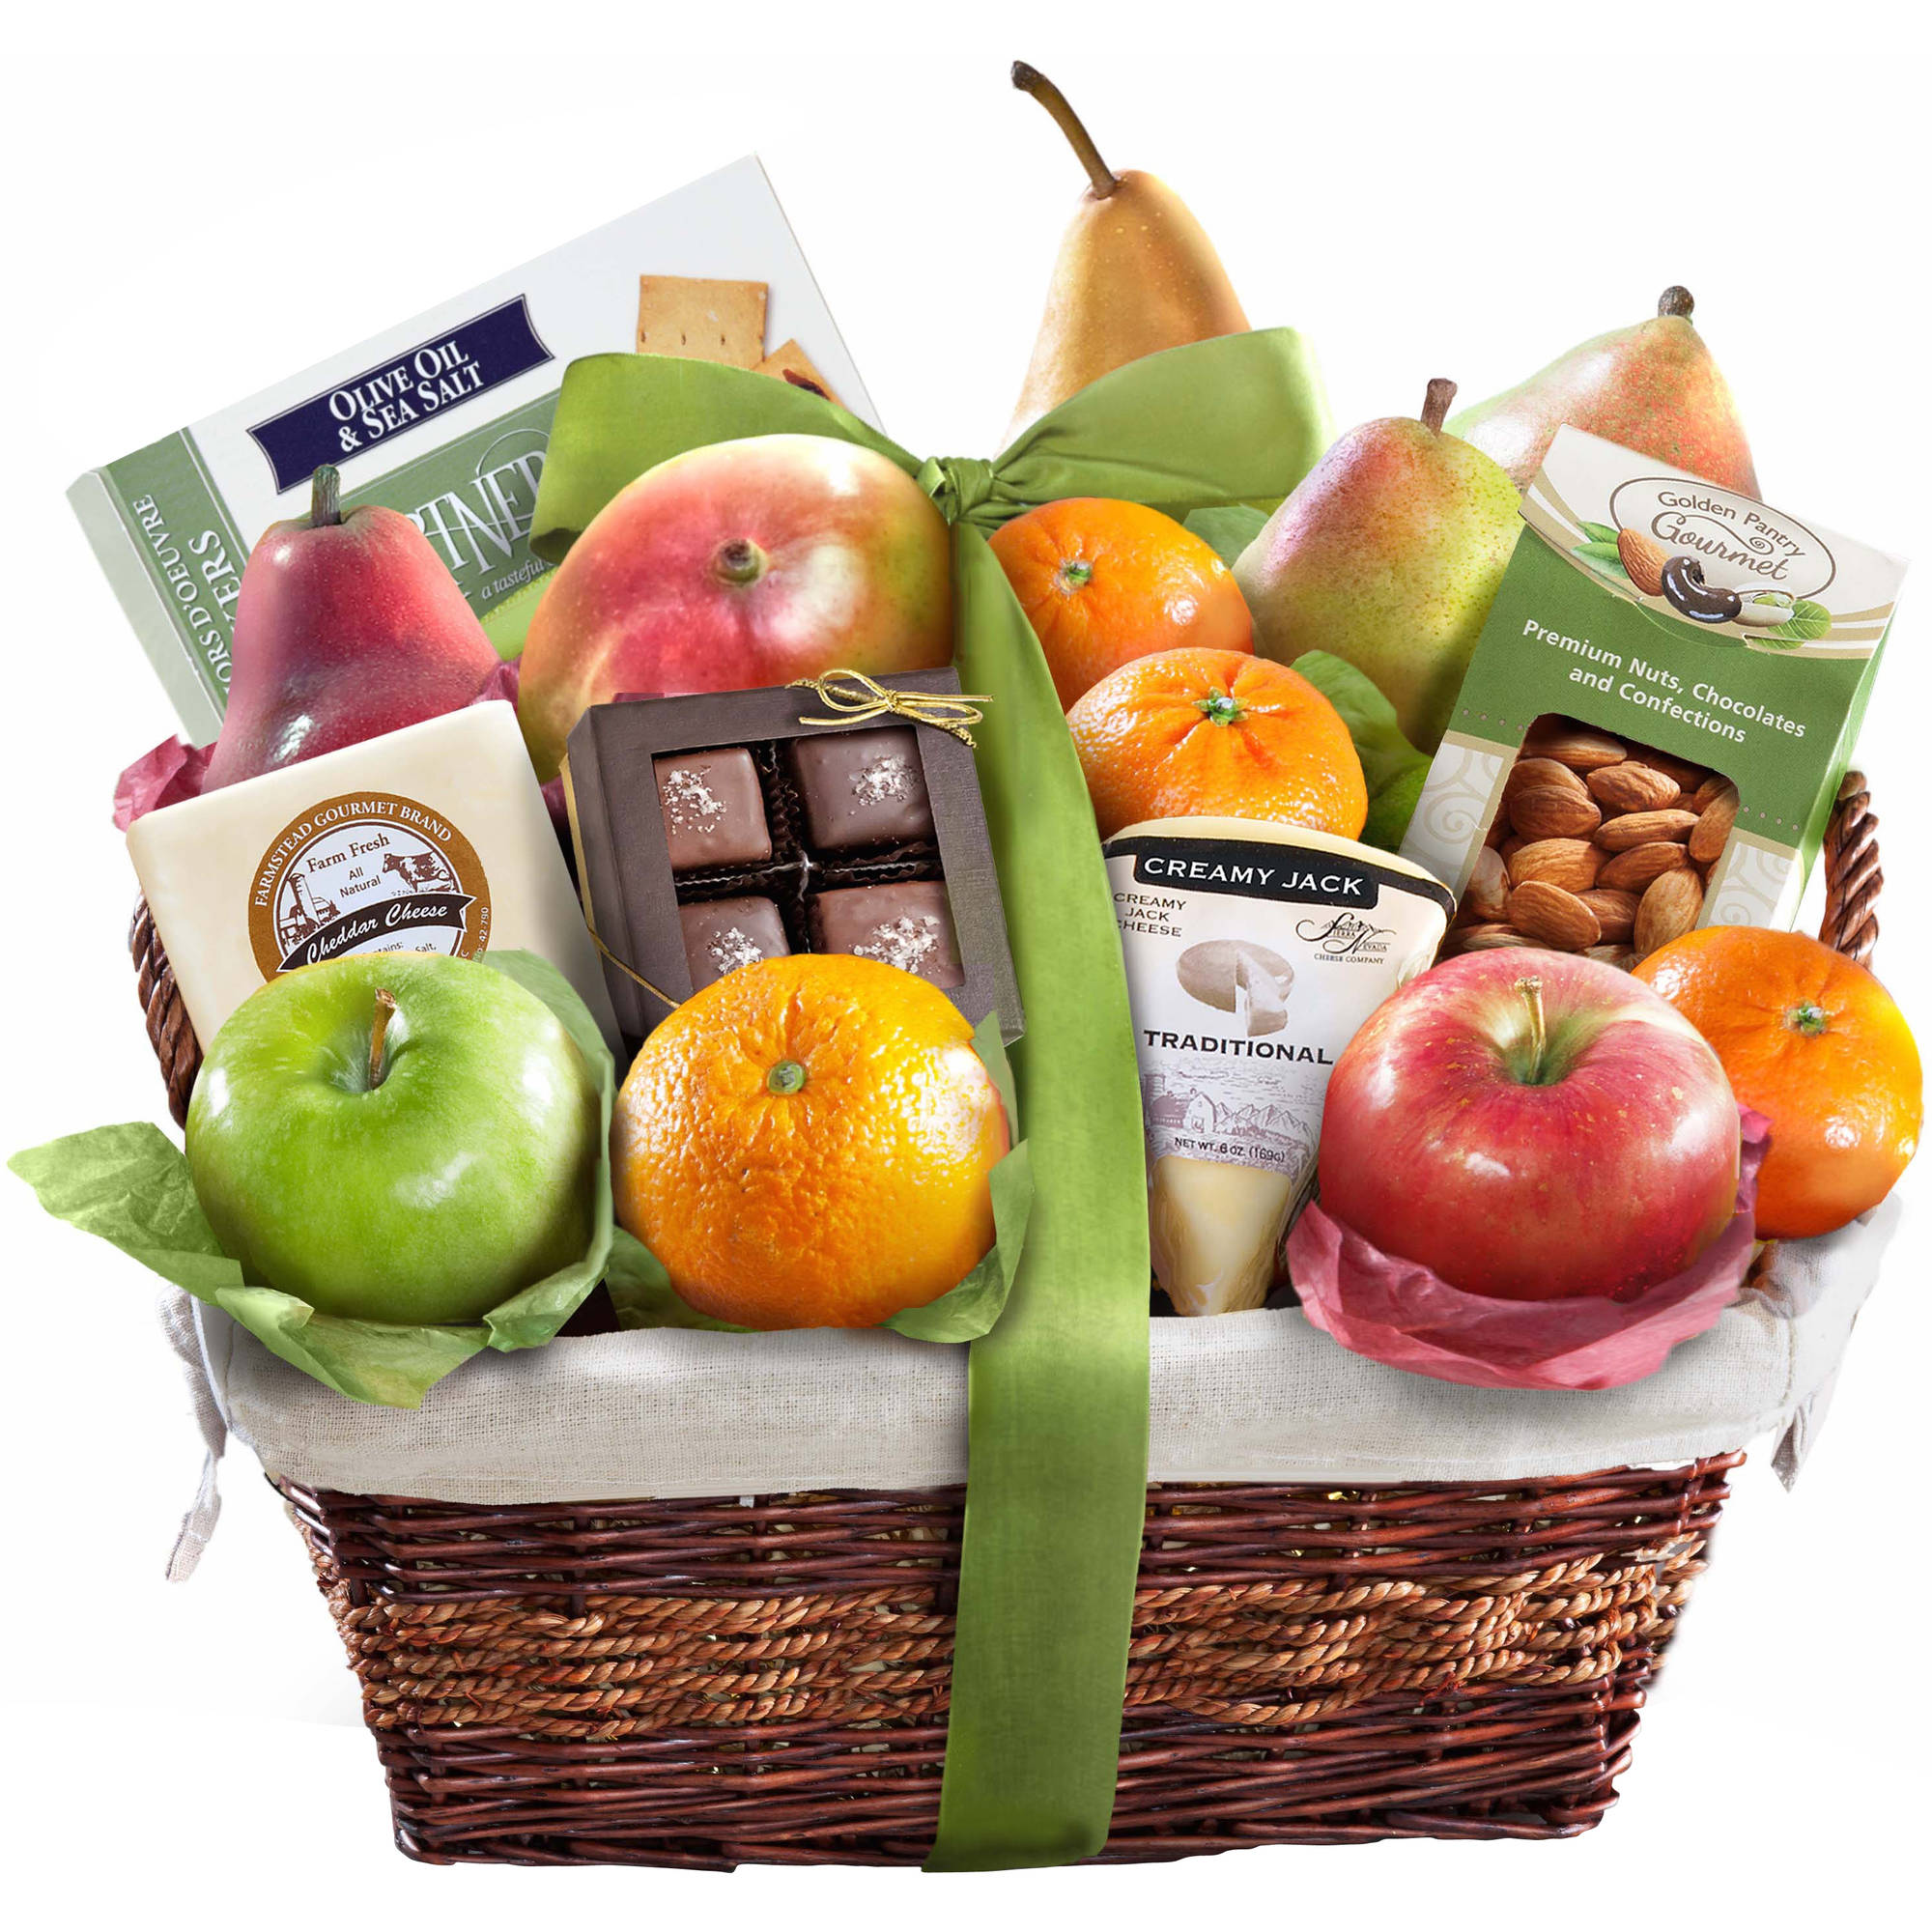 Golden State Fruit The Classic Deluxe Fruit Basket Gift Set, 19 pc